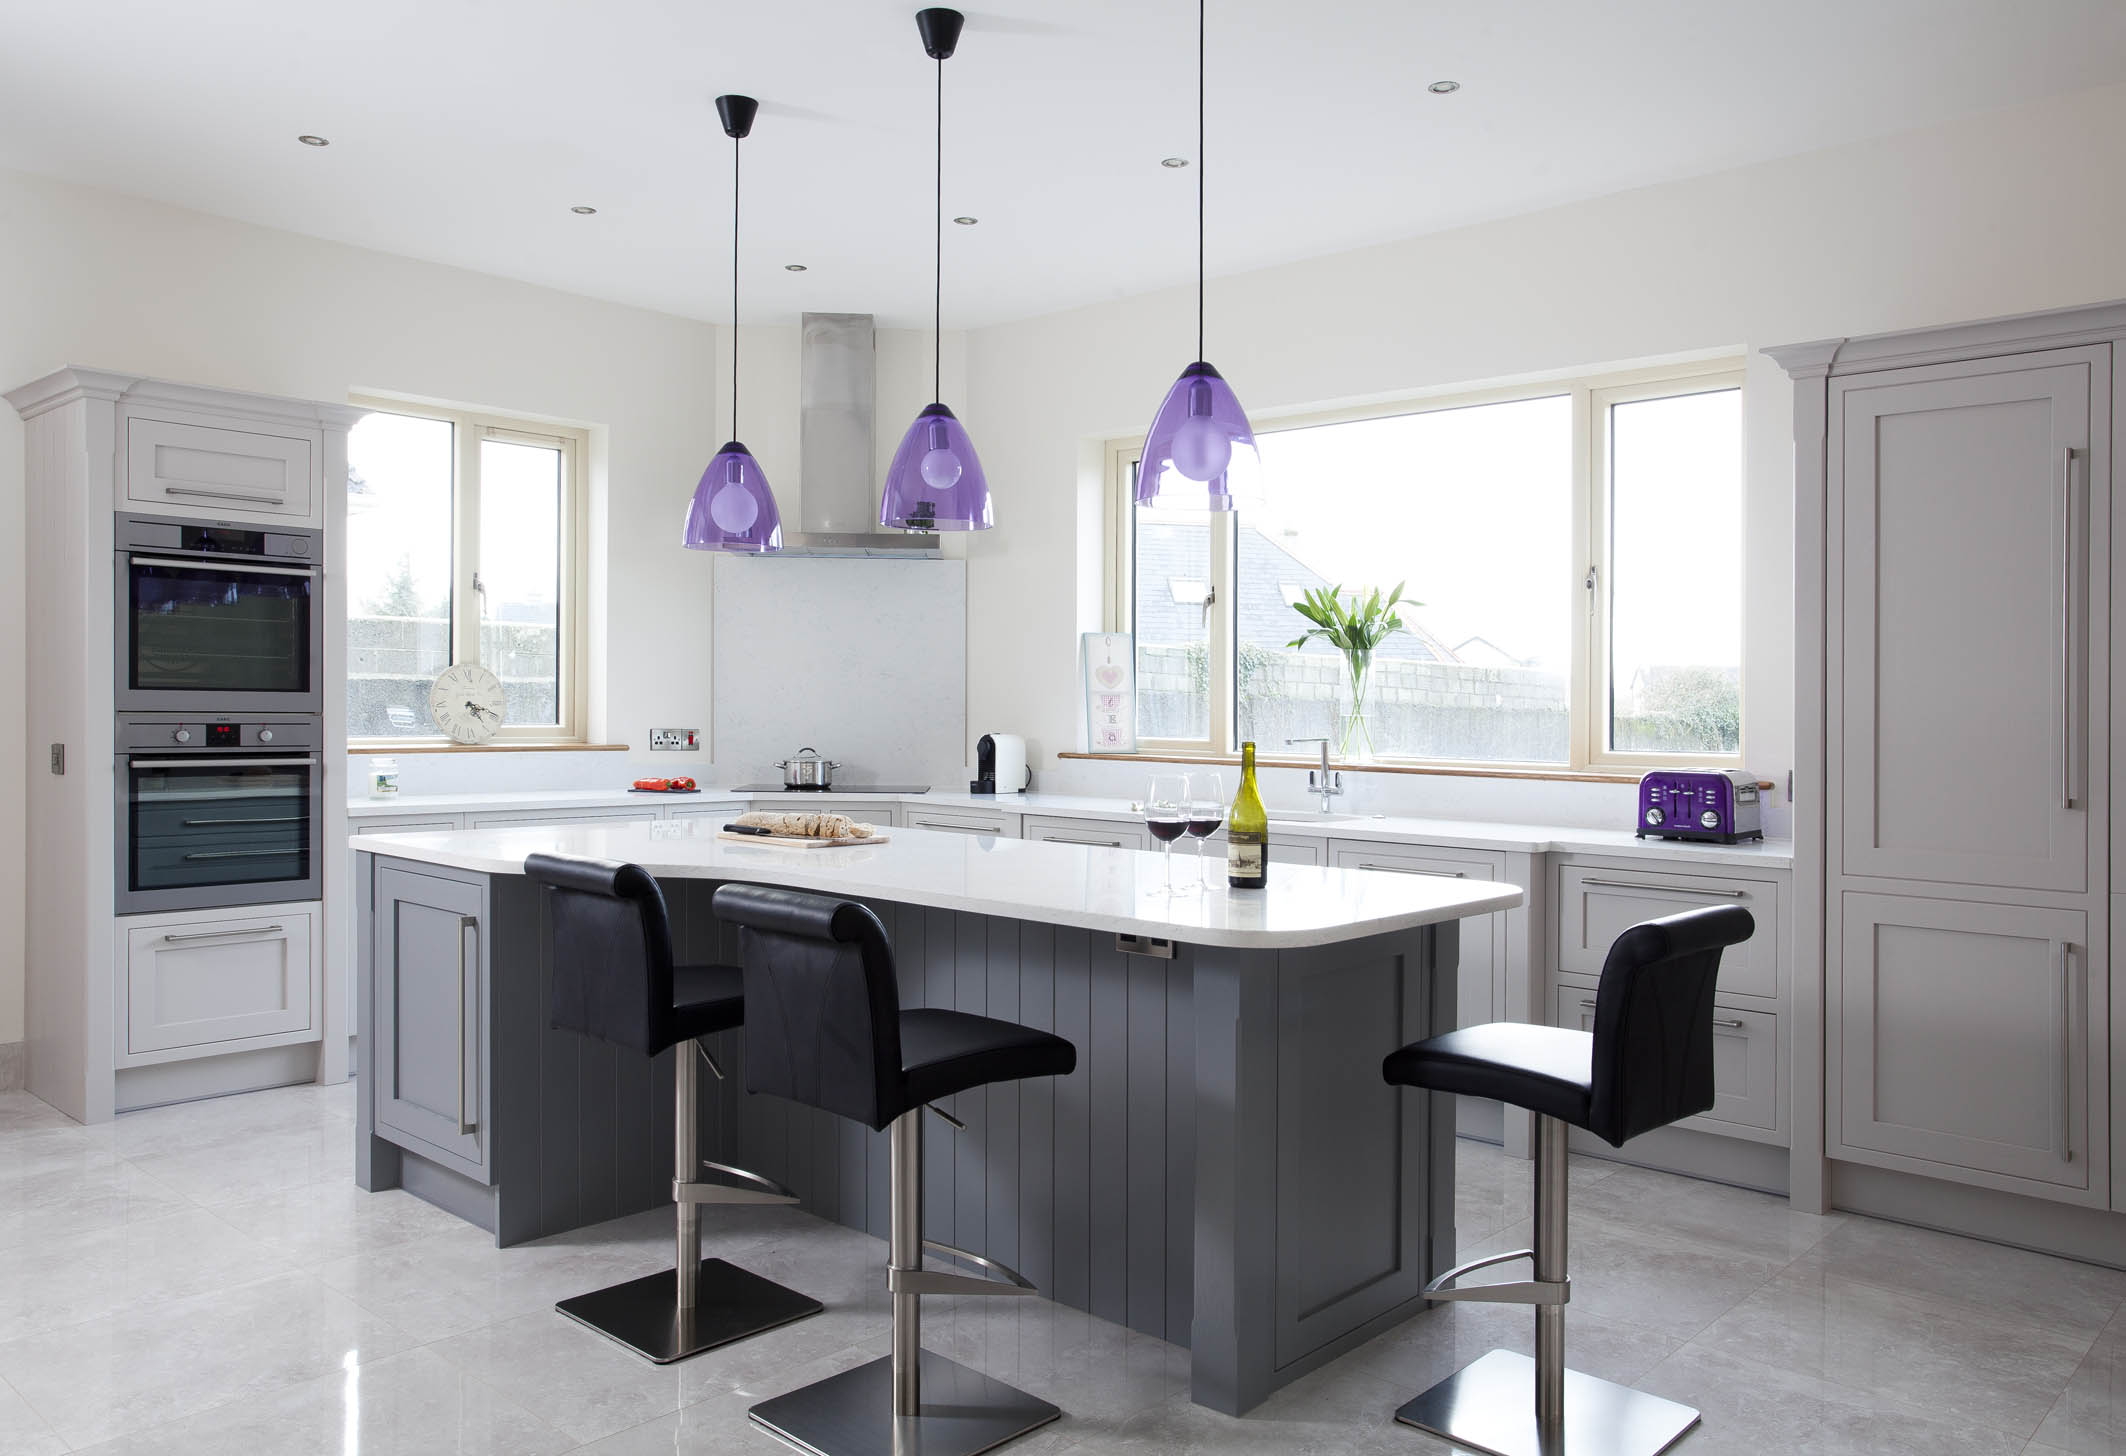 Classic contemporary handmade kitchen Tipperary painted in